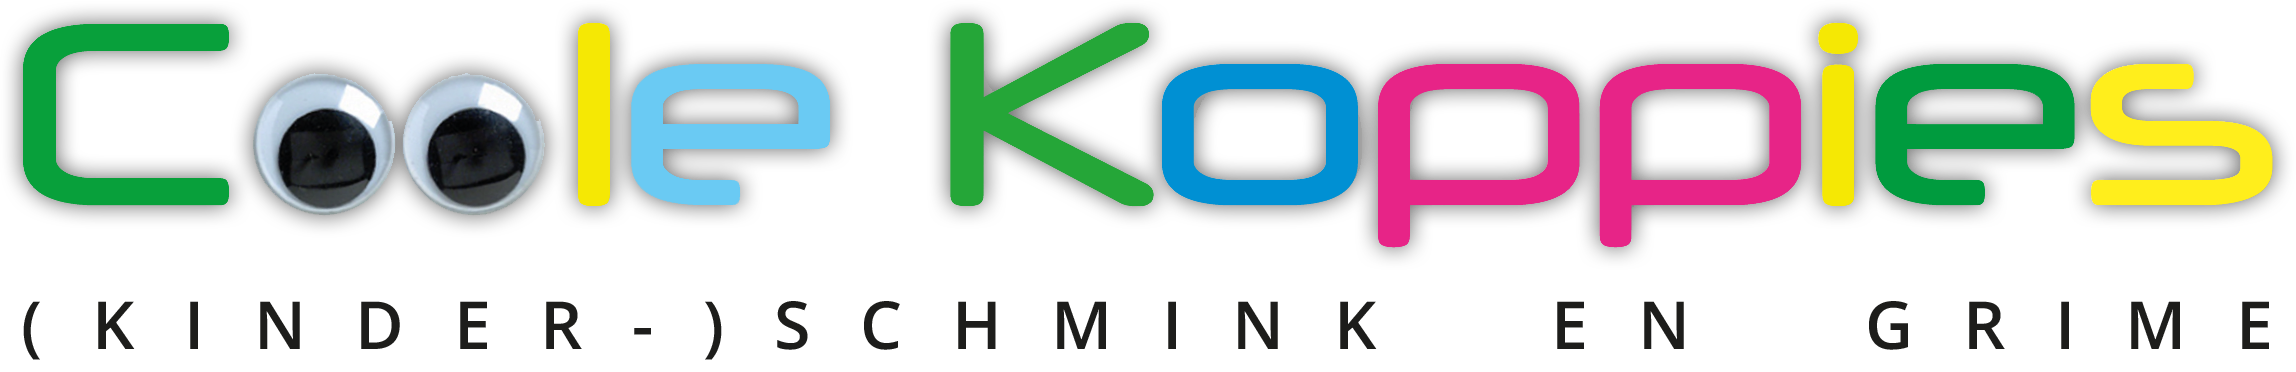 coolekoppies logo